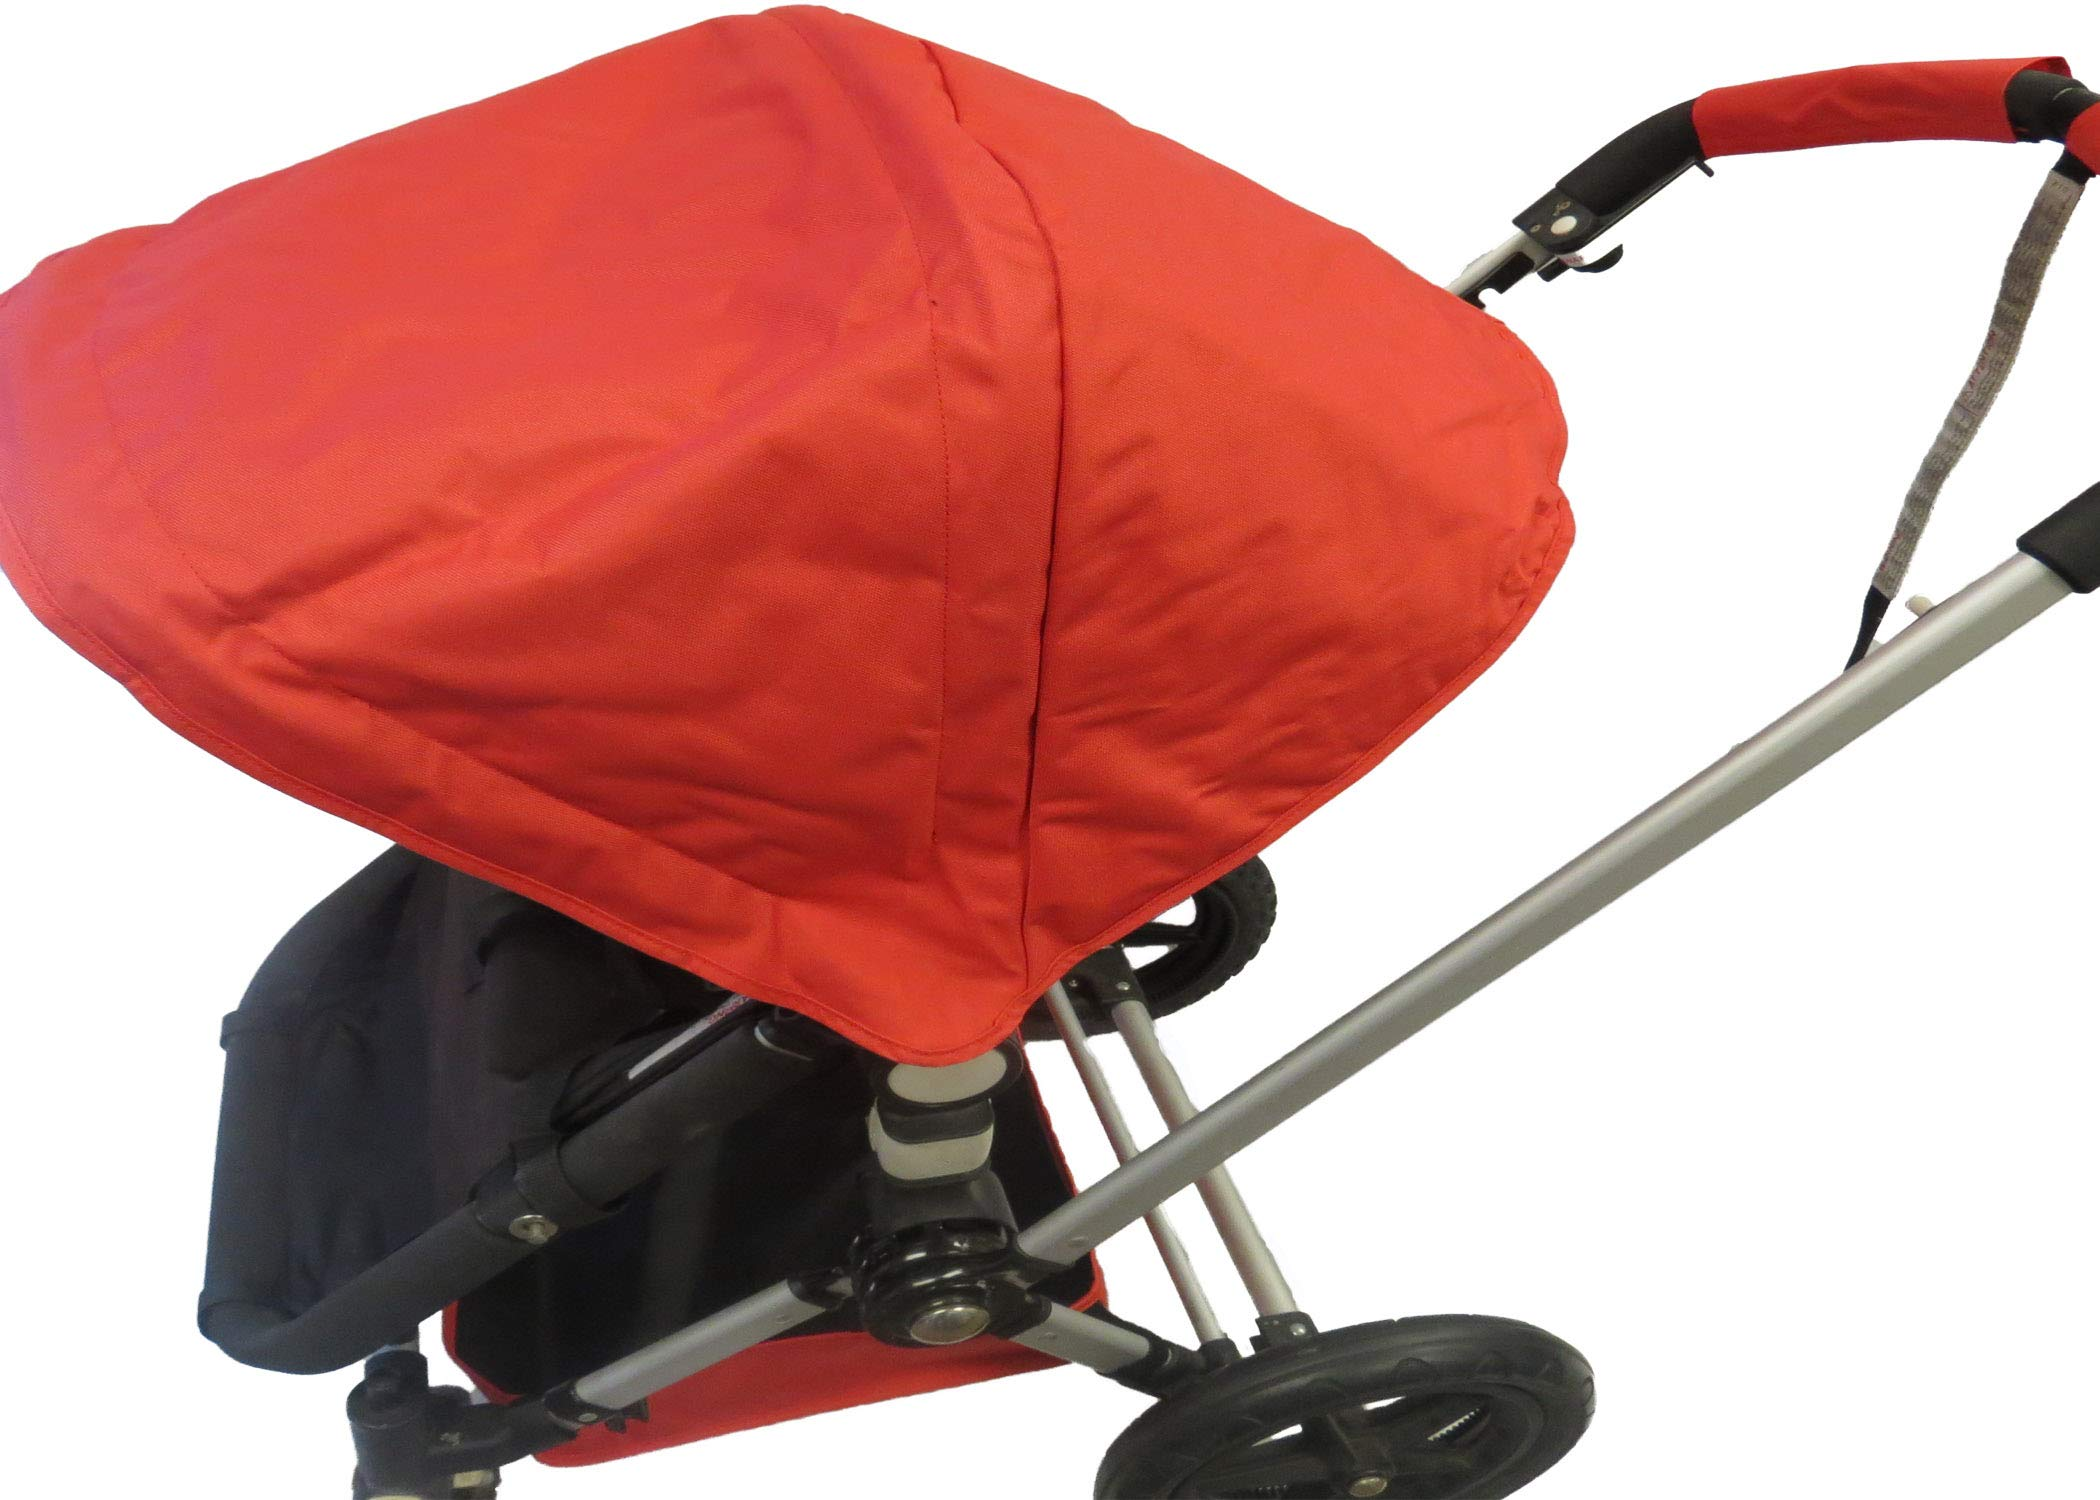 Red Sun Shade Canopy and Large Under Seat Storage Basket Plus Free Handle Bar Covers for Bugaboo Cameleon 1, 2, 3, Frog Baby Child Strollers